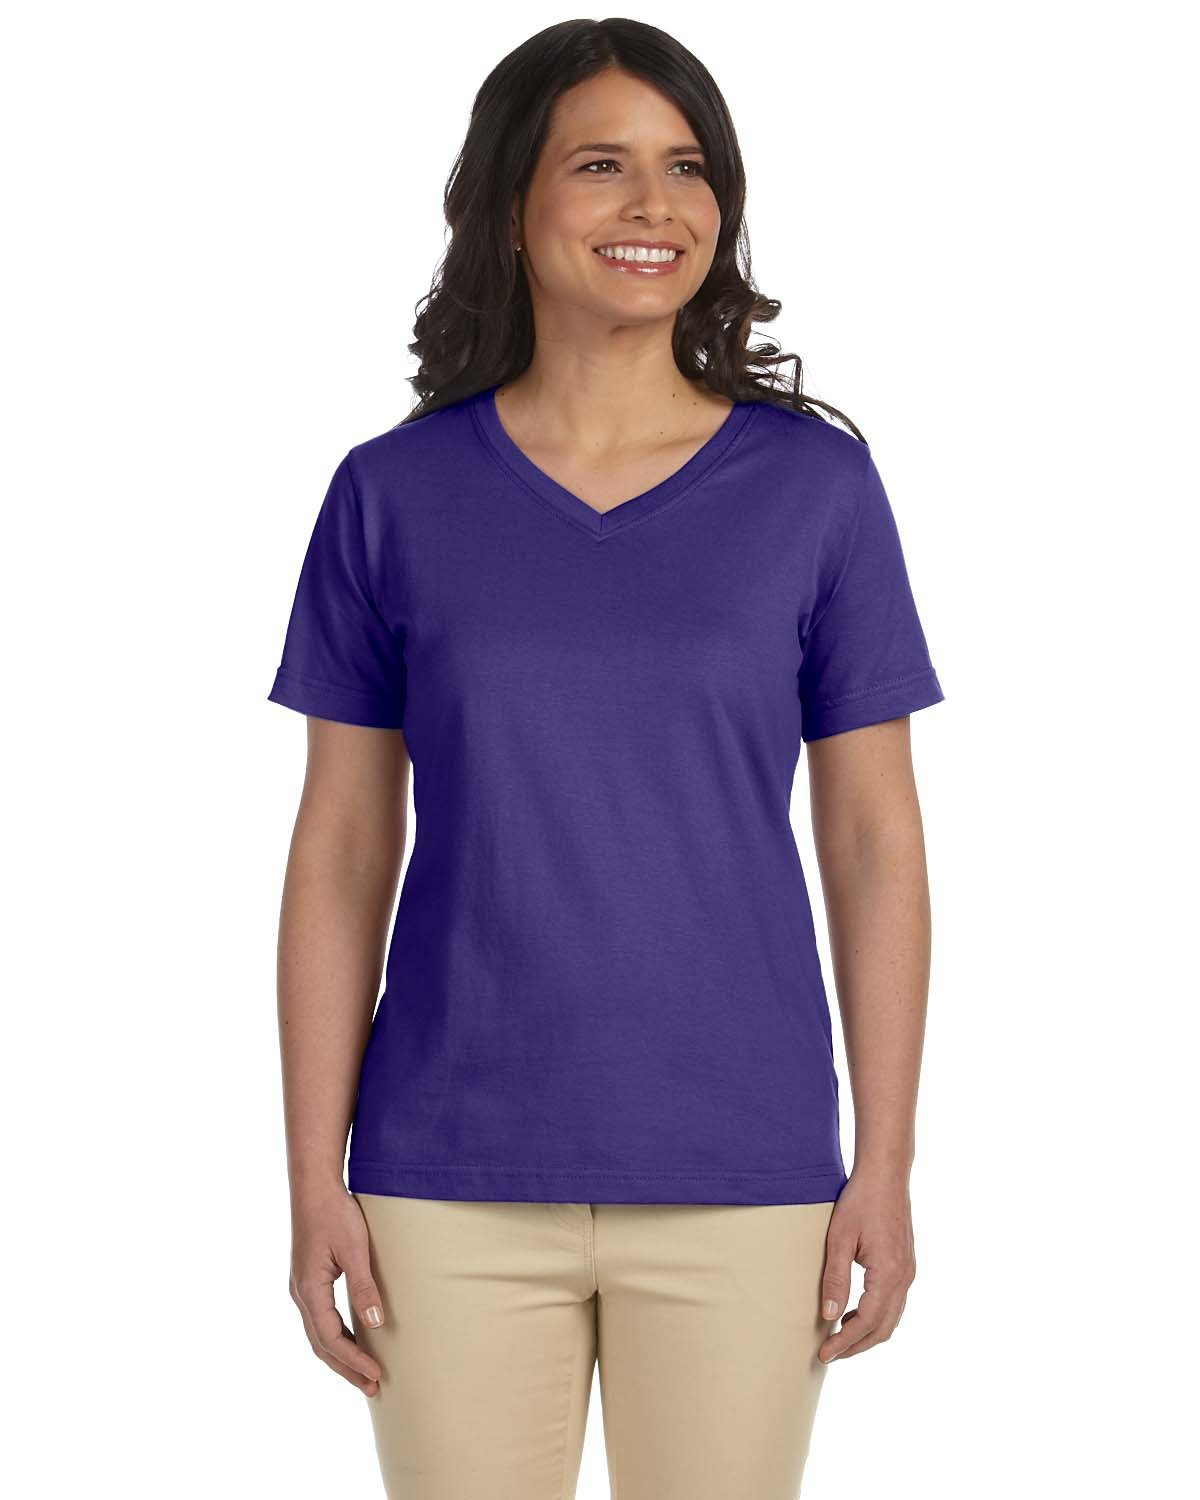 LAT Ladies' Premium Jersey V-Neck T-Shirt PURPLE